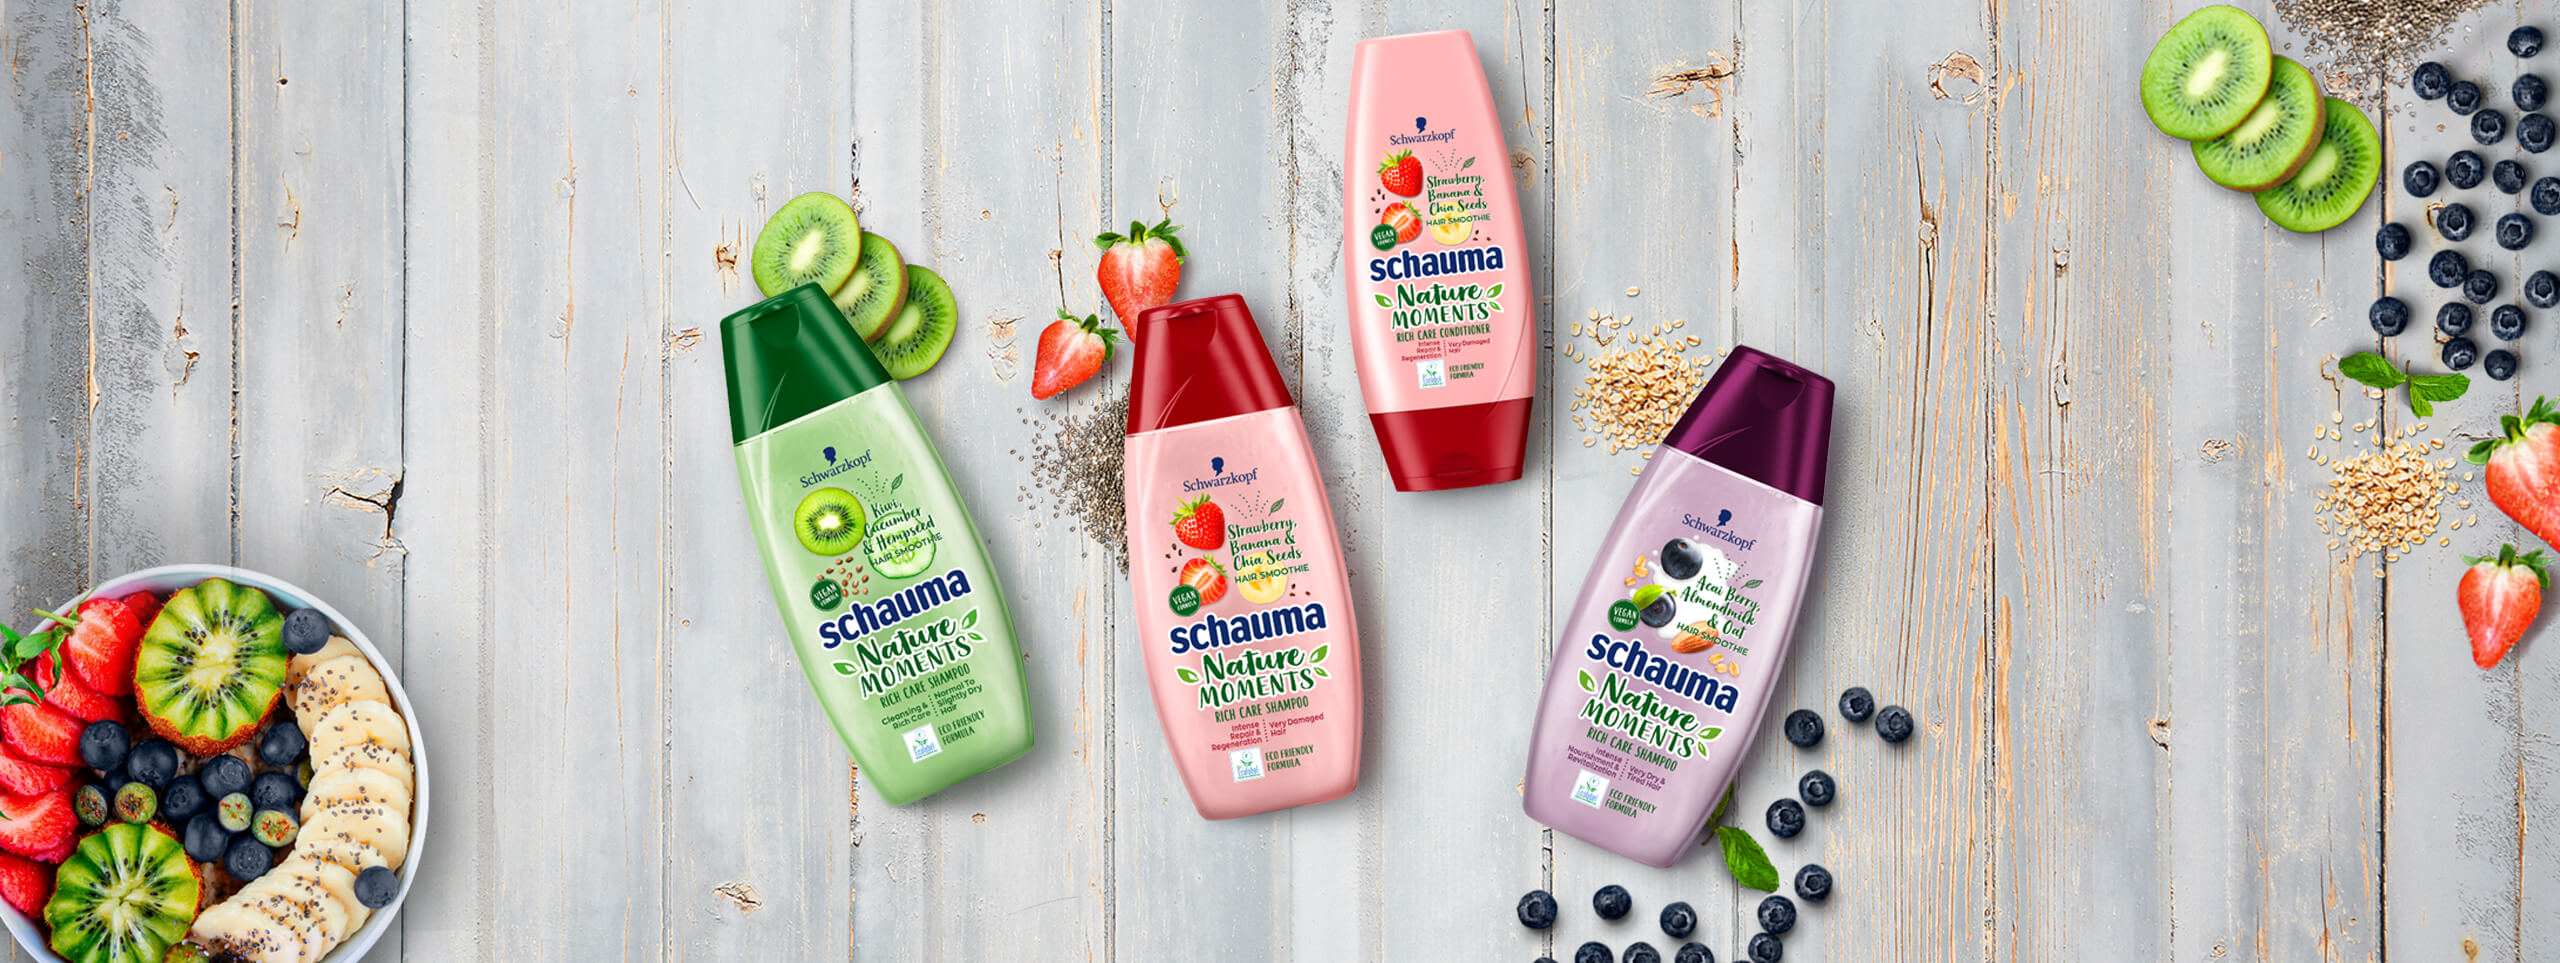 schauma_com_kiwi_strawberry_acai_berry_2560x963